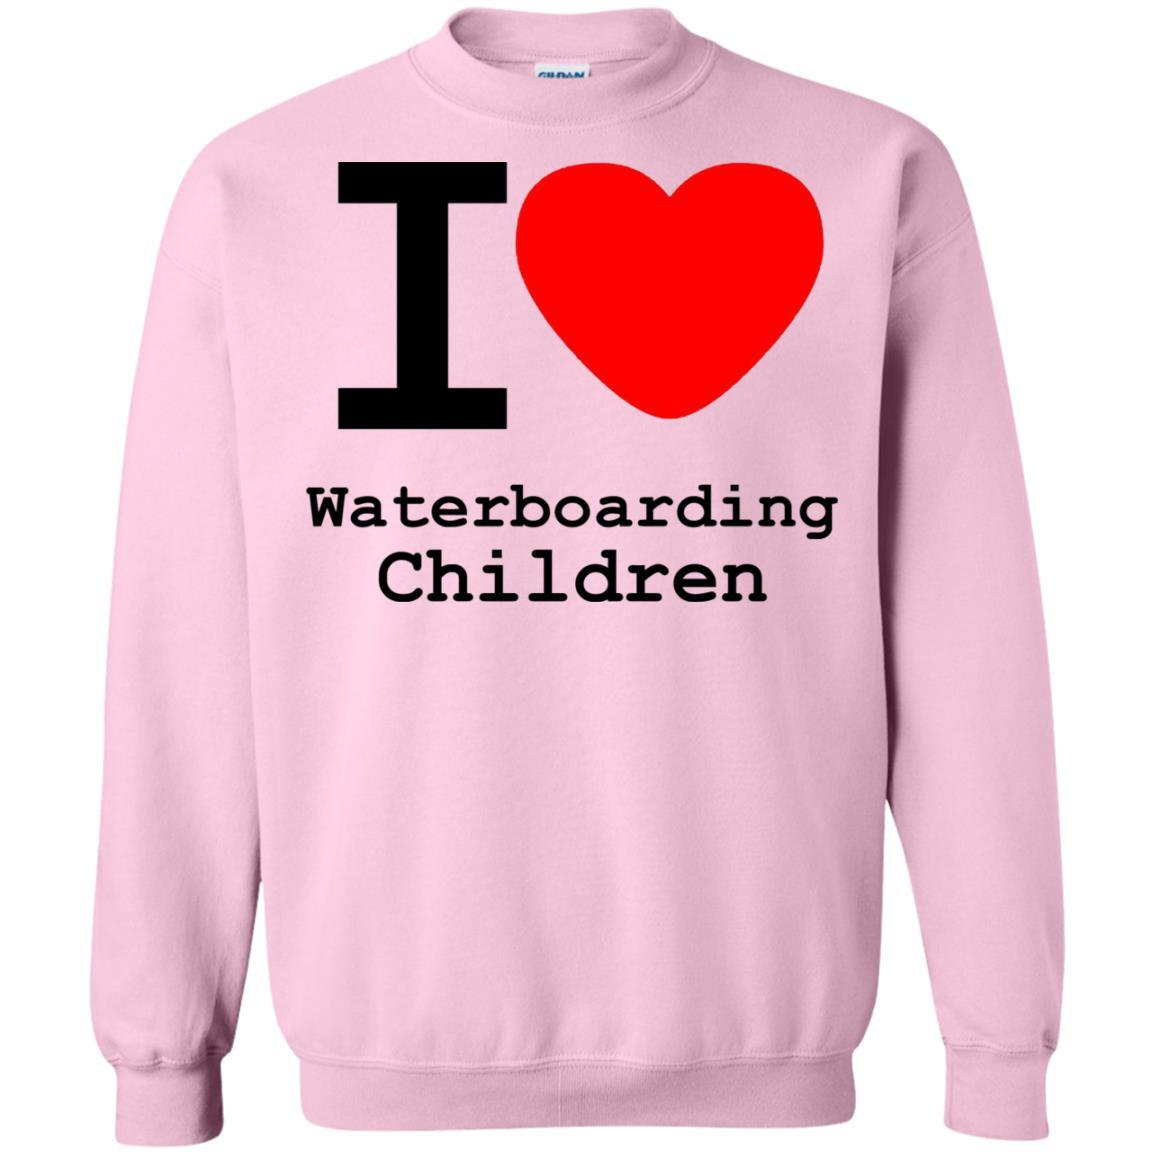 I love Waterboarding Children - Crewneck Pullover Sweatshirt Light Pink / 5XL